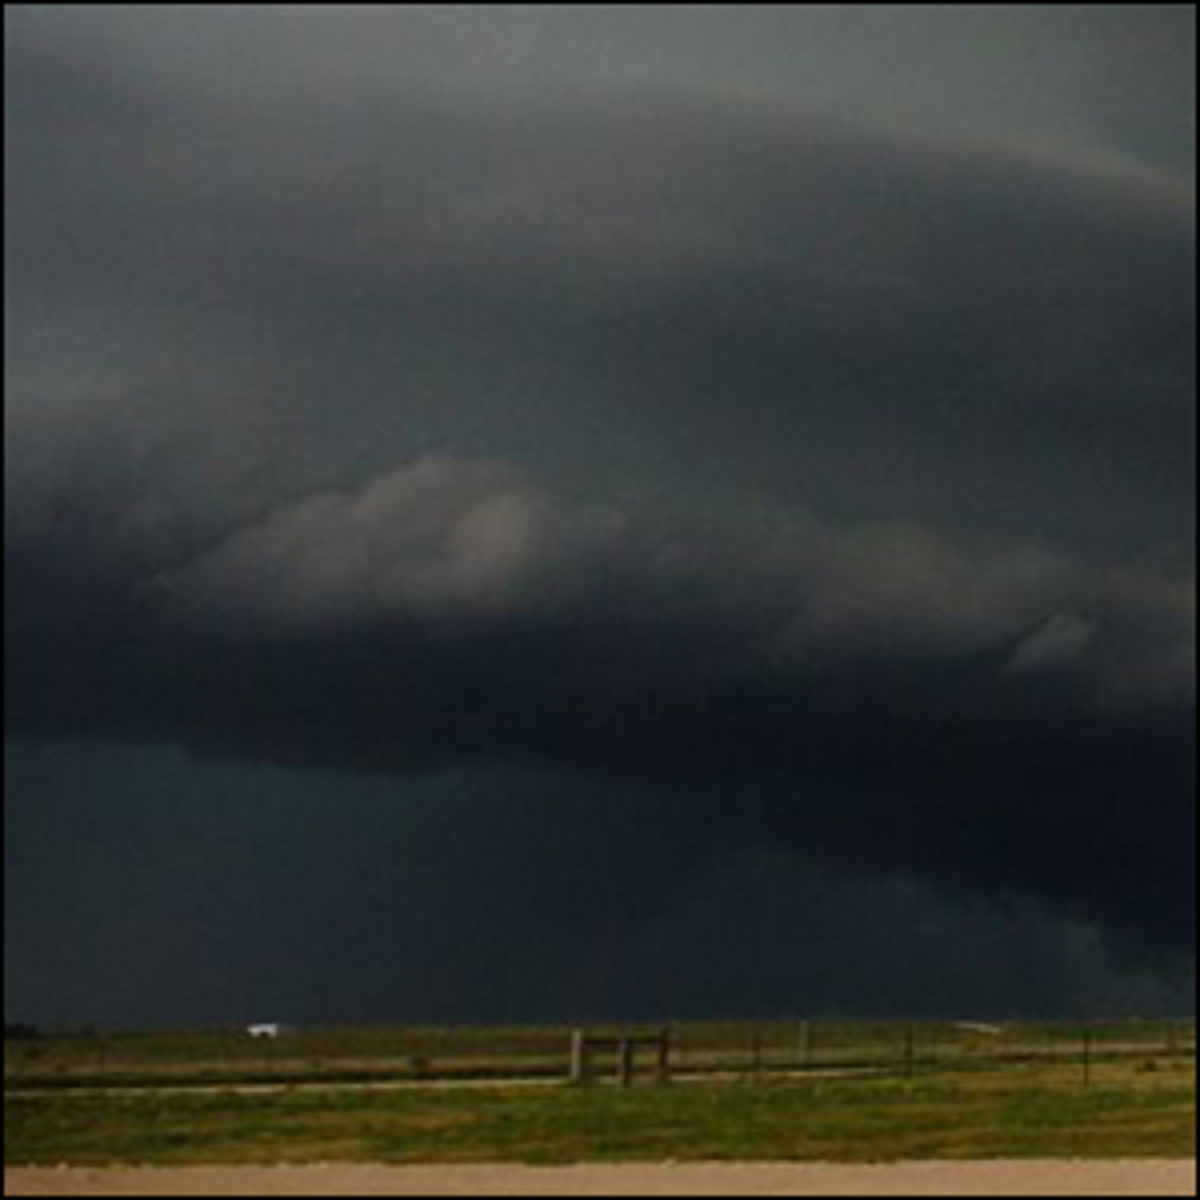 A storm being monitored and studied by VORTEX Southeast researchers.